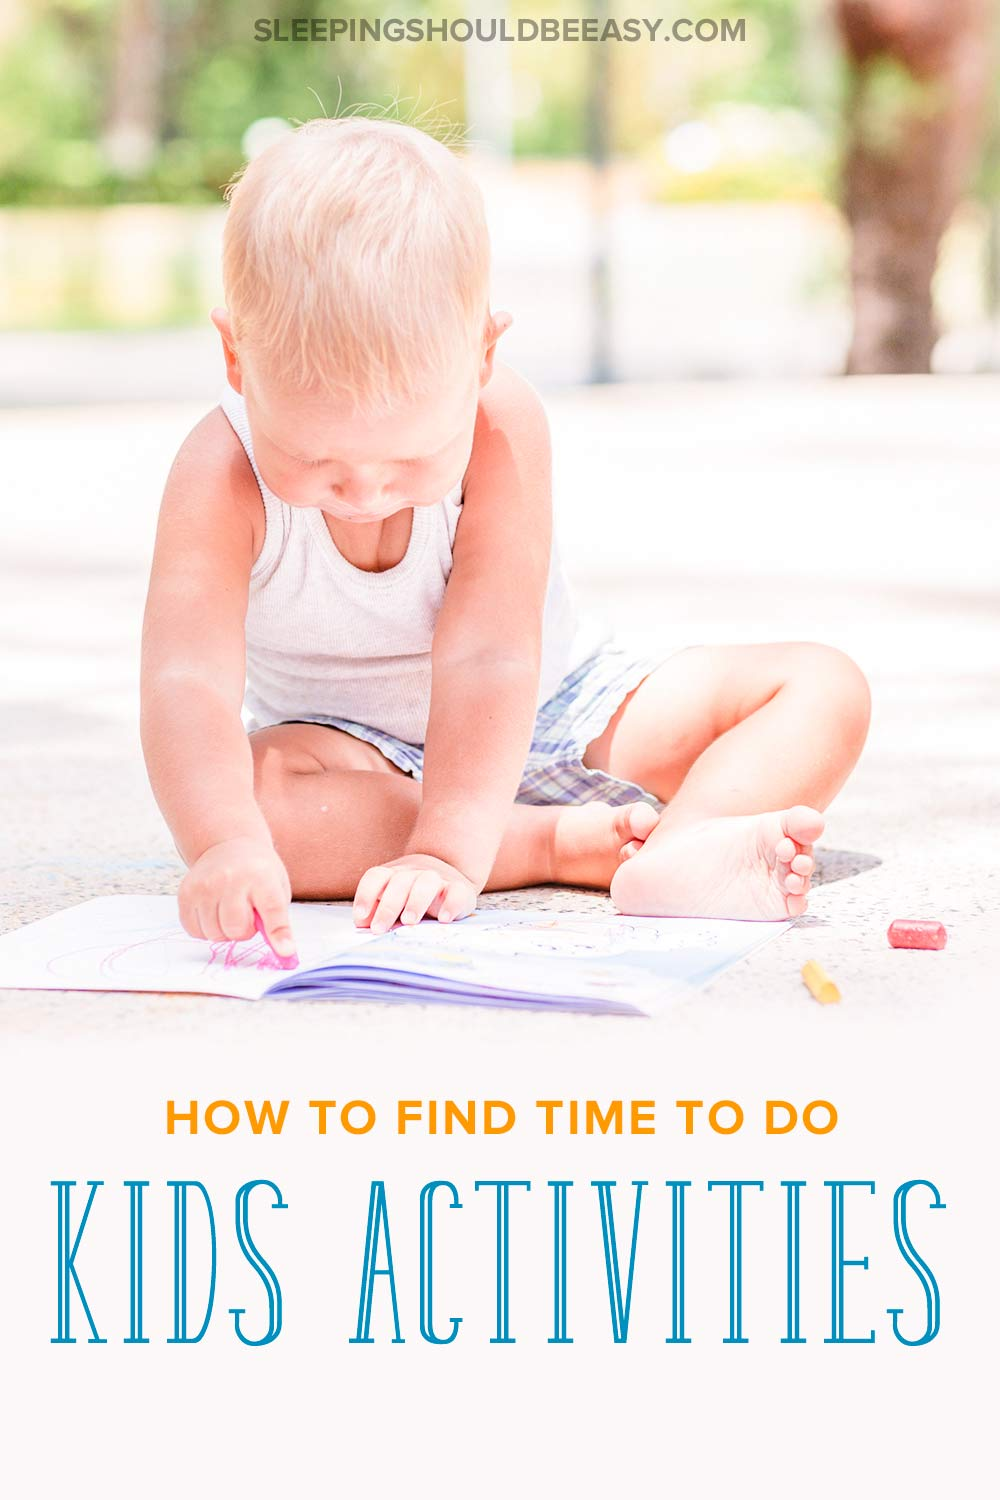 Interested in activities for infants and toddlers, but struggling to find the time to do them? Discover how to easily incorporate learning activities into your day without the stress or pressure. Even includes a FREE printable of play ideas for the early evenings! #infants #activitiesforkids